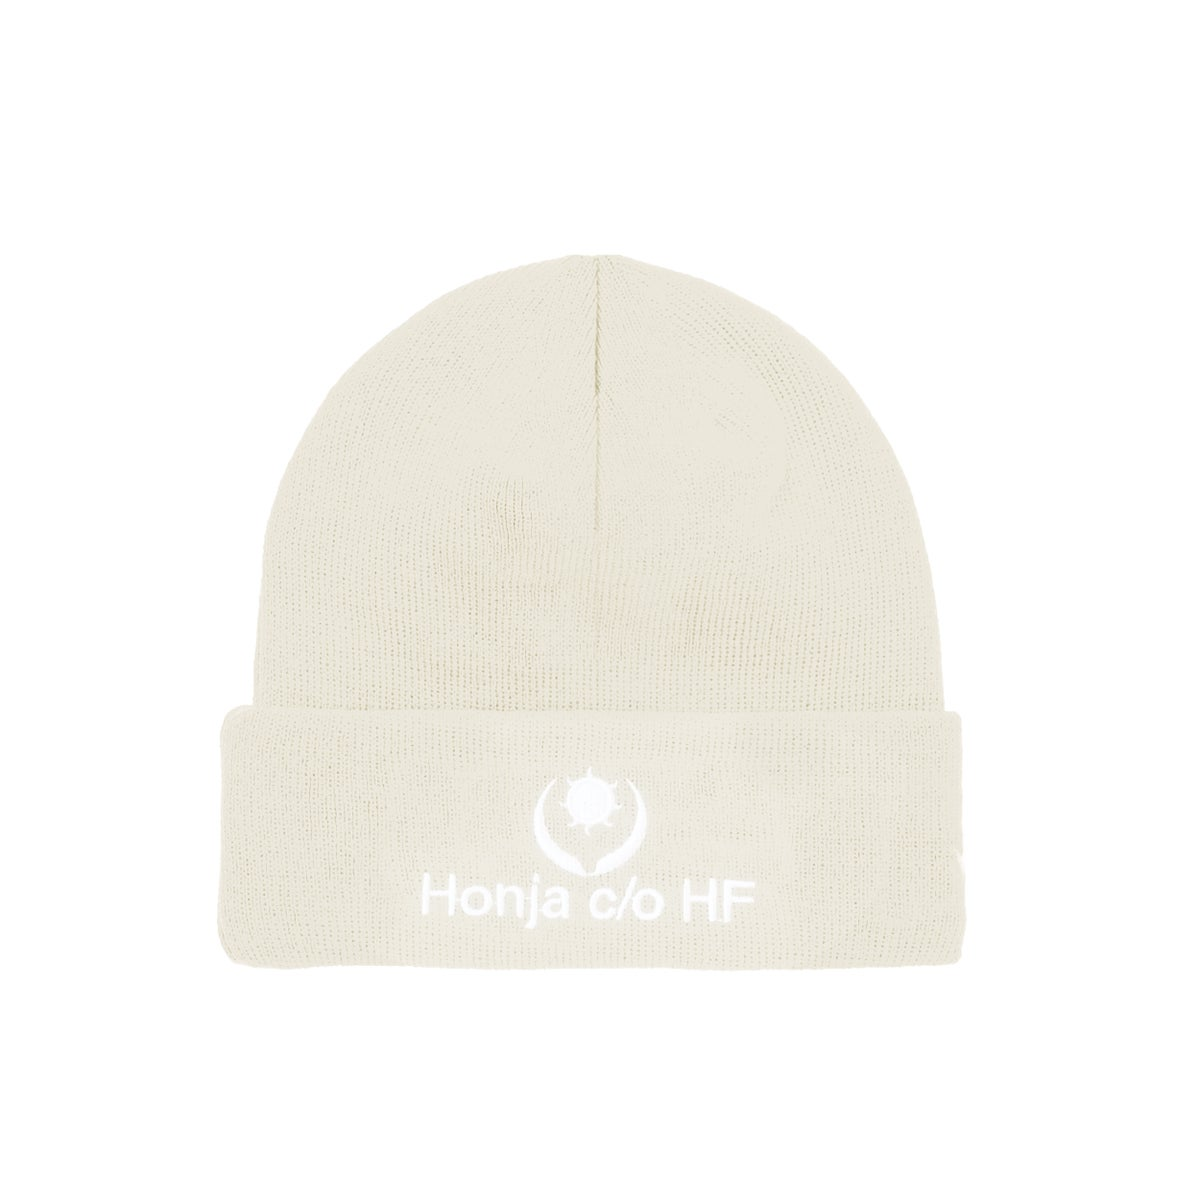 """Image of DOUBLE-SIDE """"L'HUMAIN BLEU"""" EMBROIDERED BEANIE - Off White (Unisex)"""